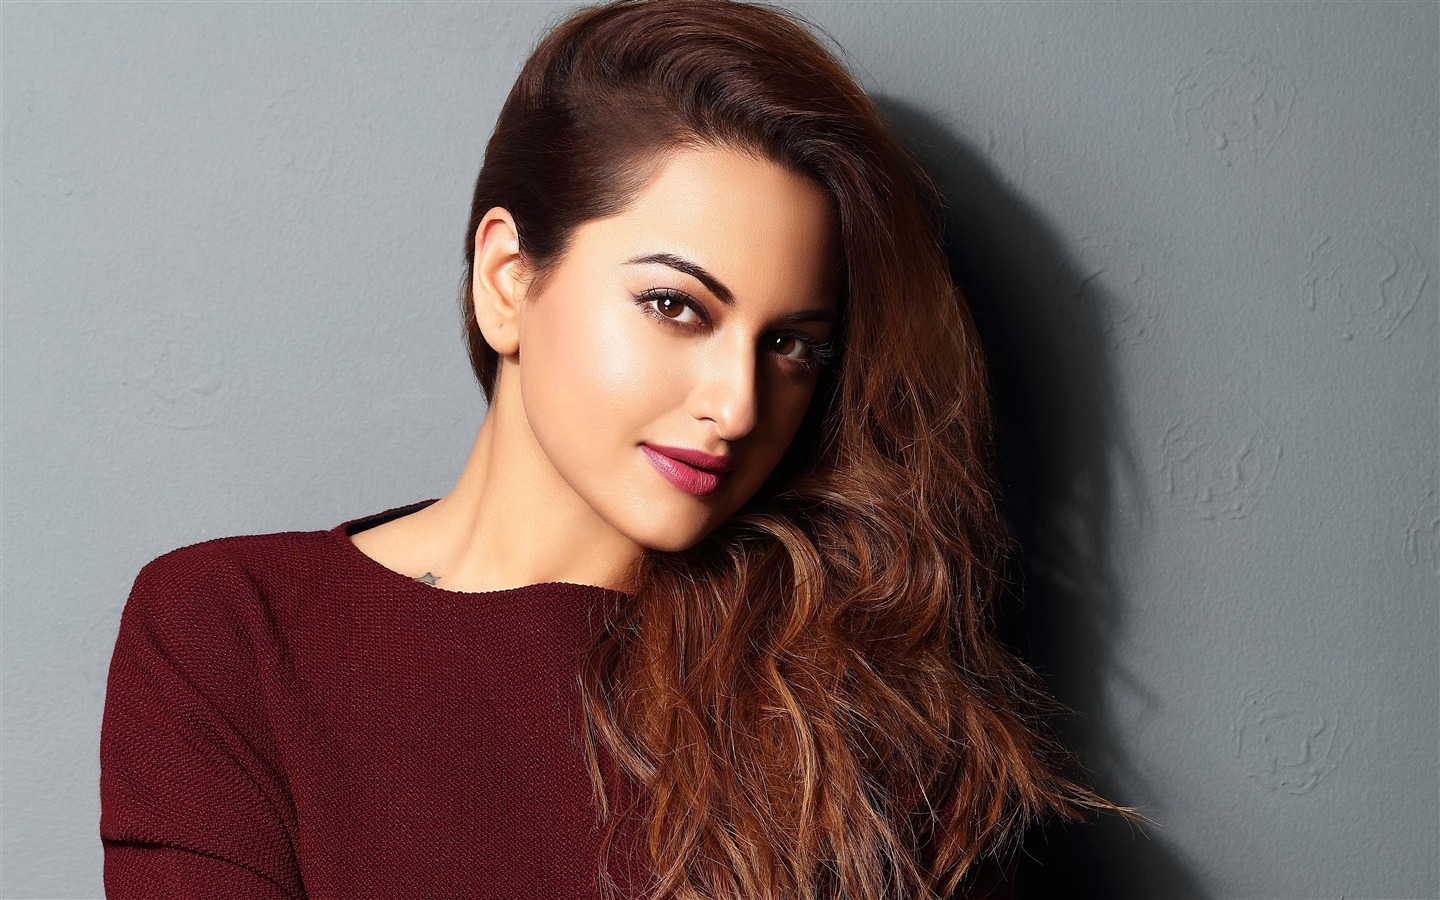 2018 Sonakshi Sinha Indian Actor HD Photo - 1440x900 wallpaper download